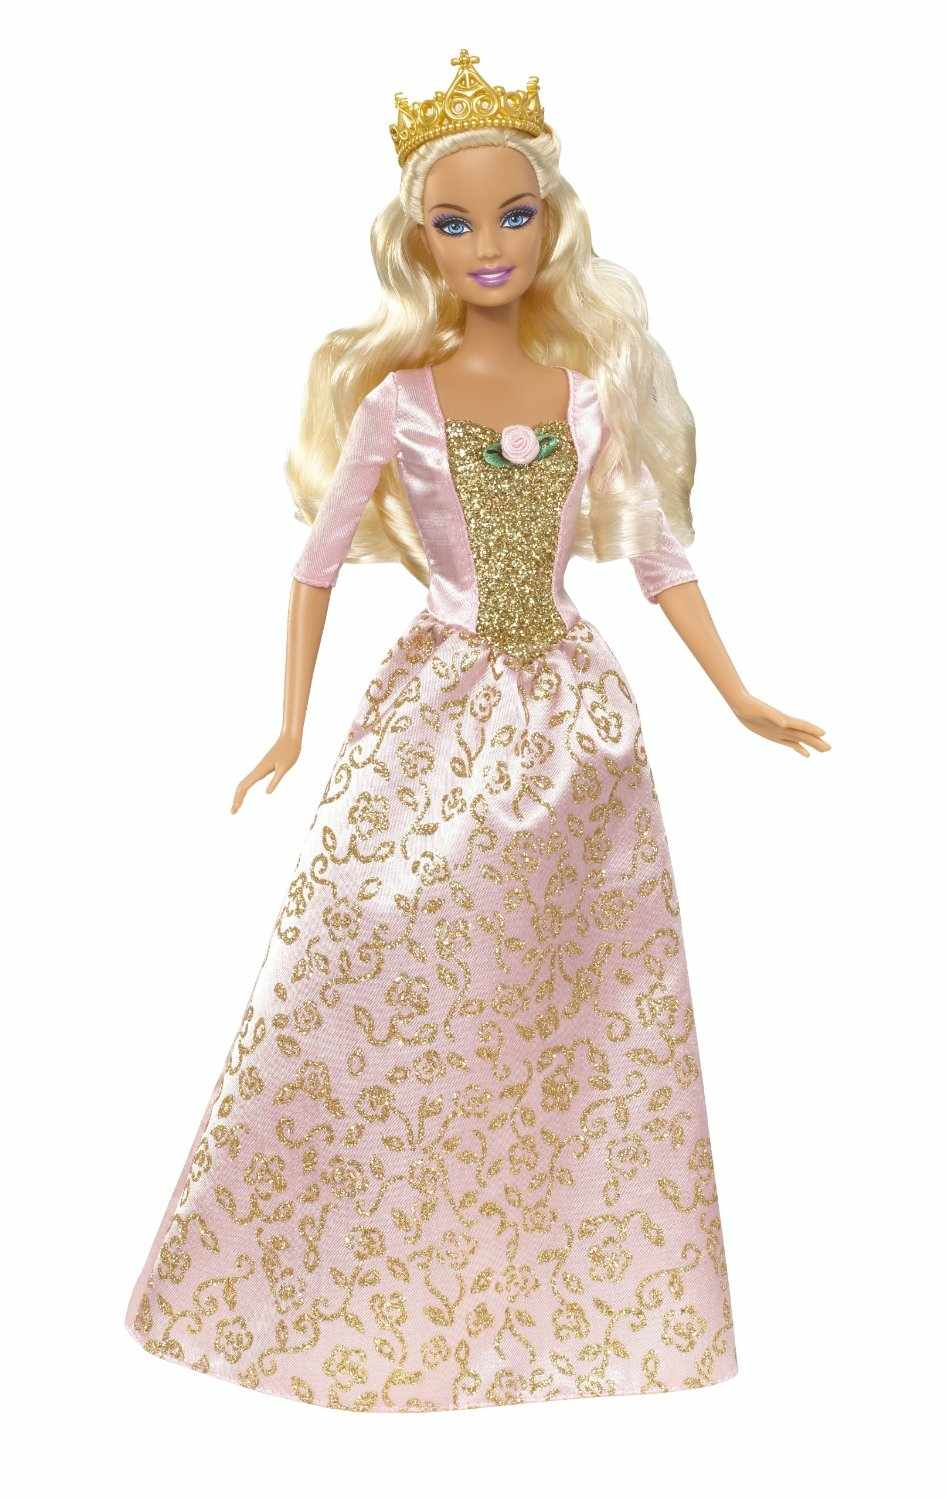 Fashion vignette 2017 - Image Princess Anneliese New Doll Png Barbie Movies